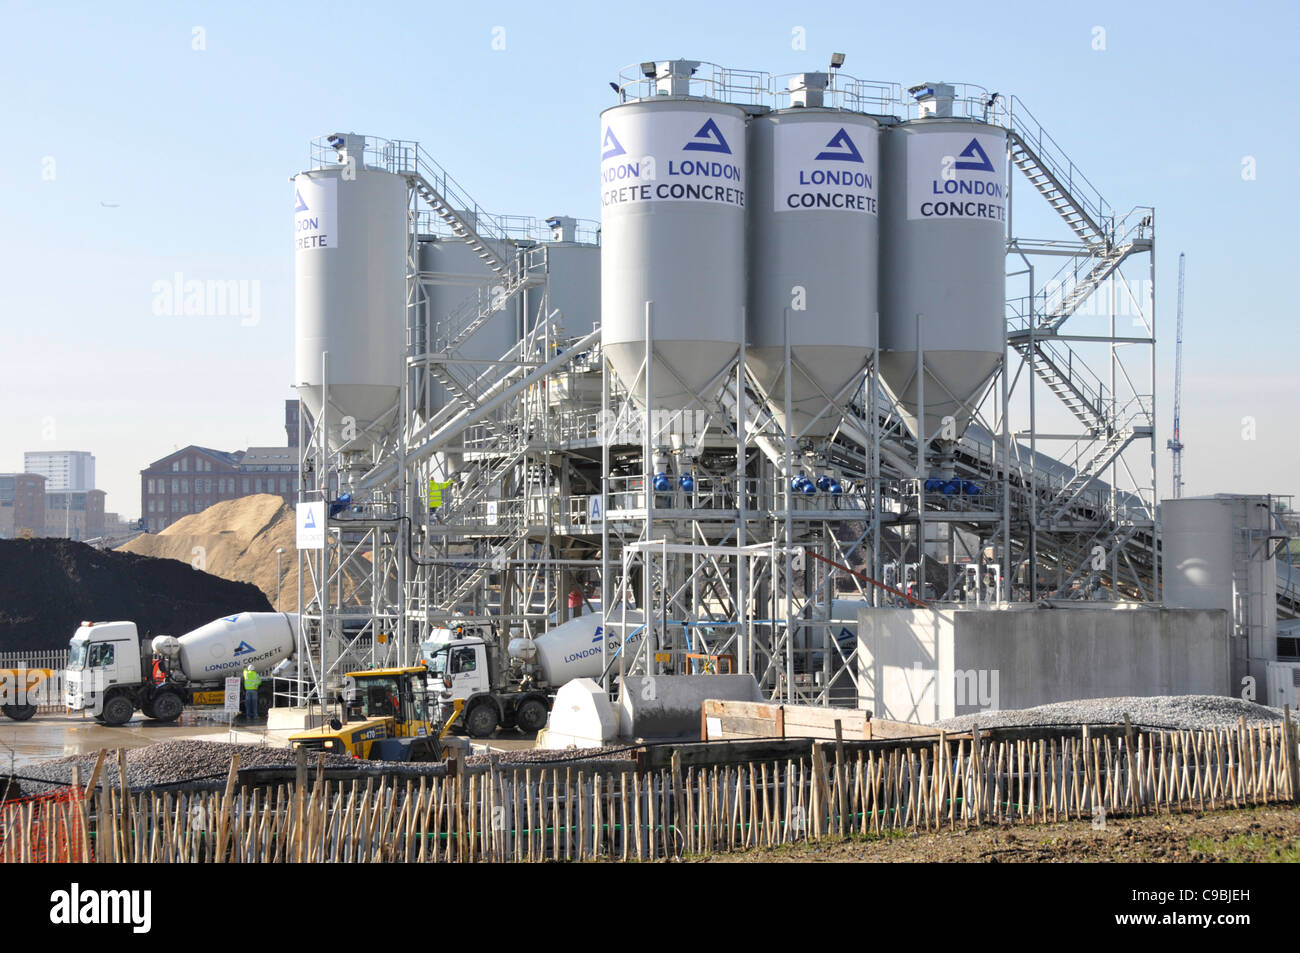 London Concrete industrial site distribution depot with cement silos aggregate storage & mixer delivery lorry - Stock Image